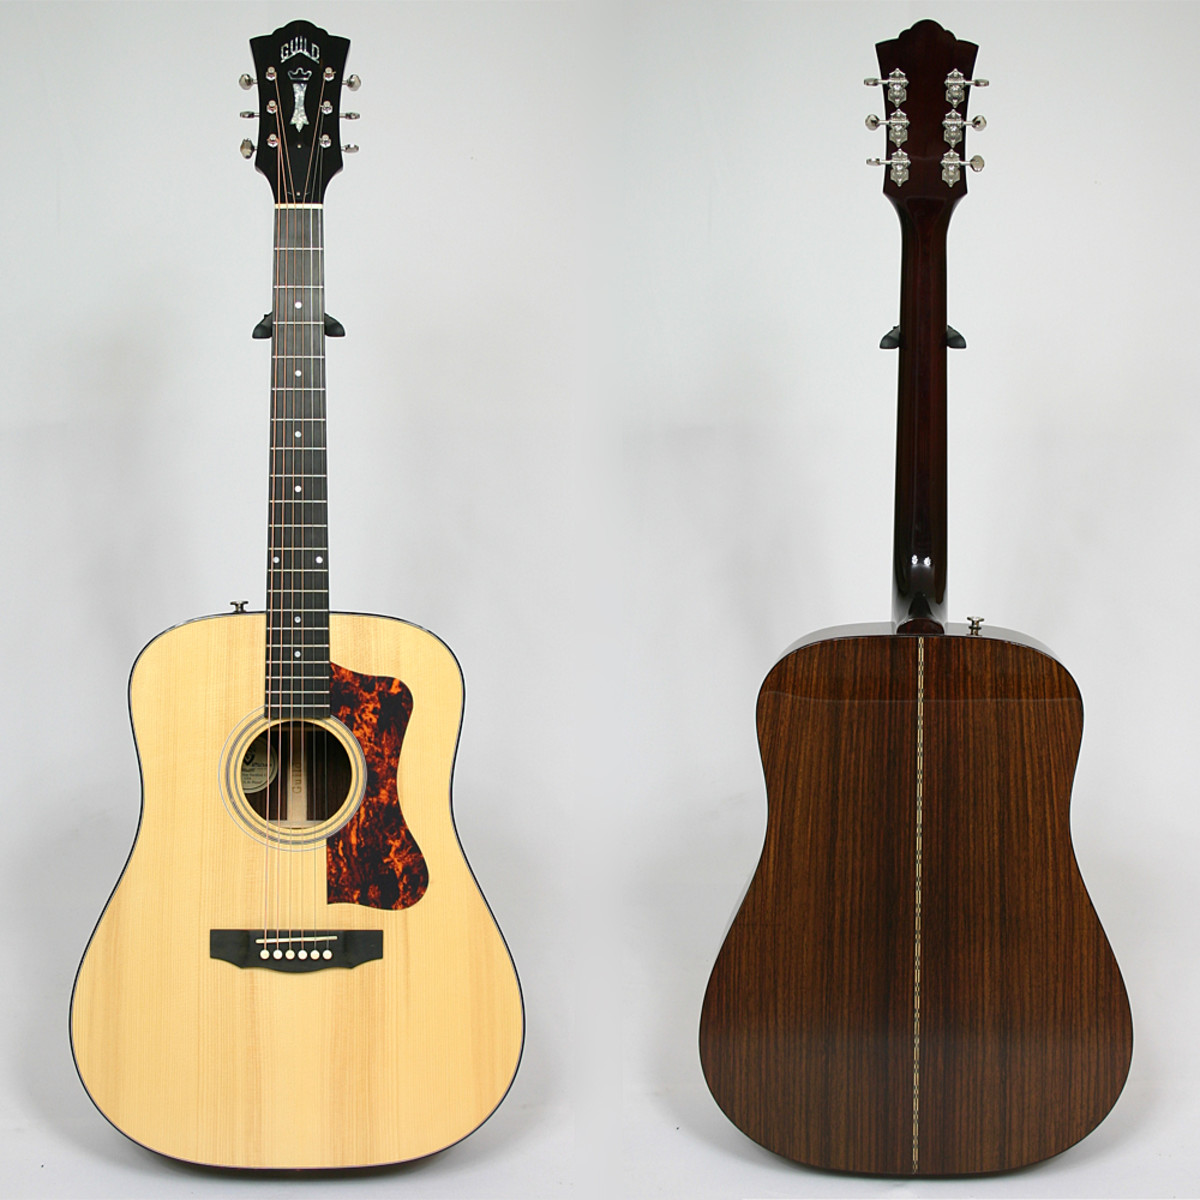 The Guild D-50 Bluegrass Special, And The Guild D-40 Jubilee Acoustic Guitars